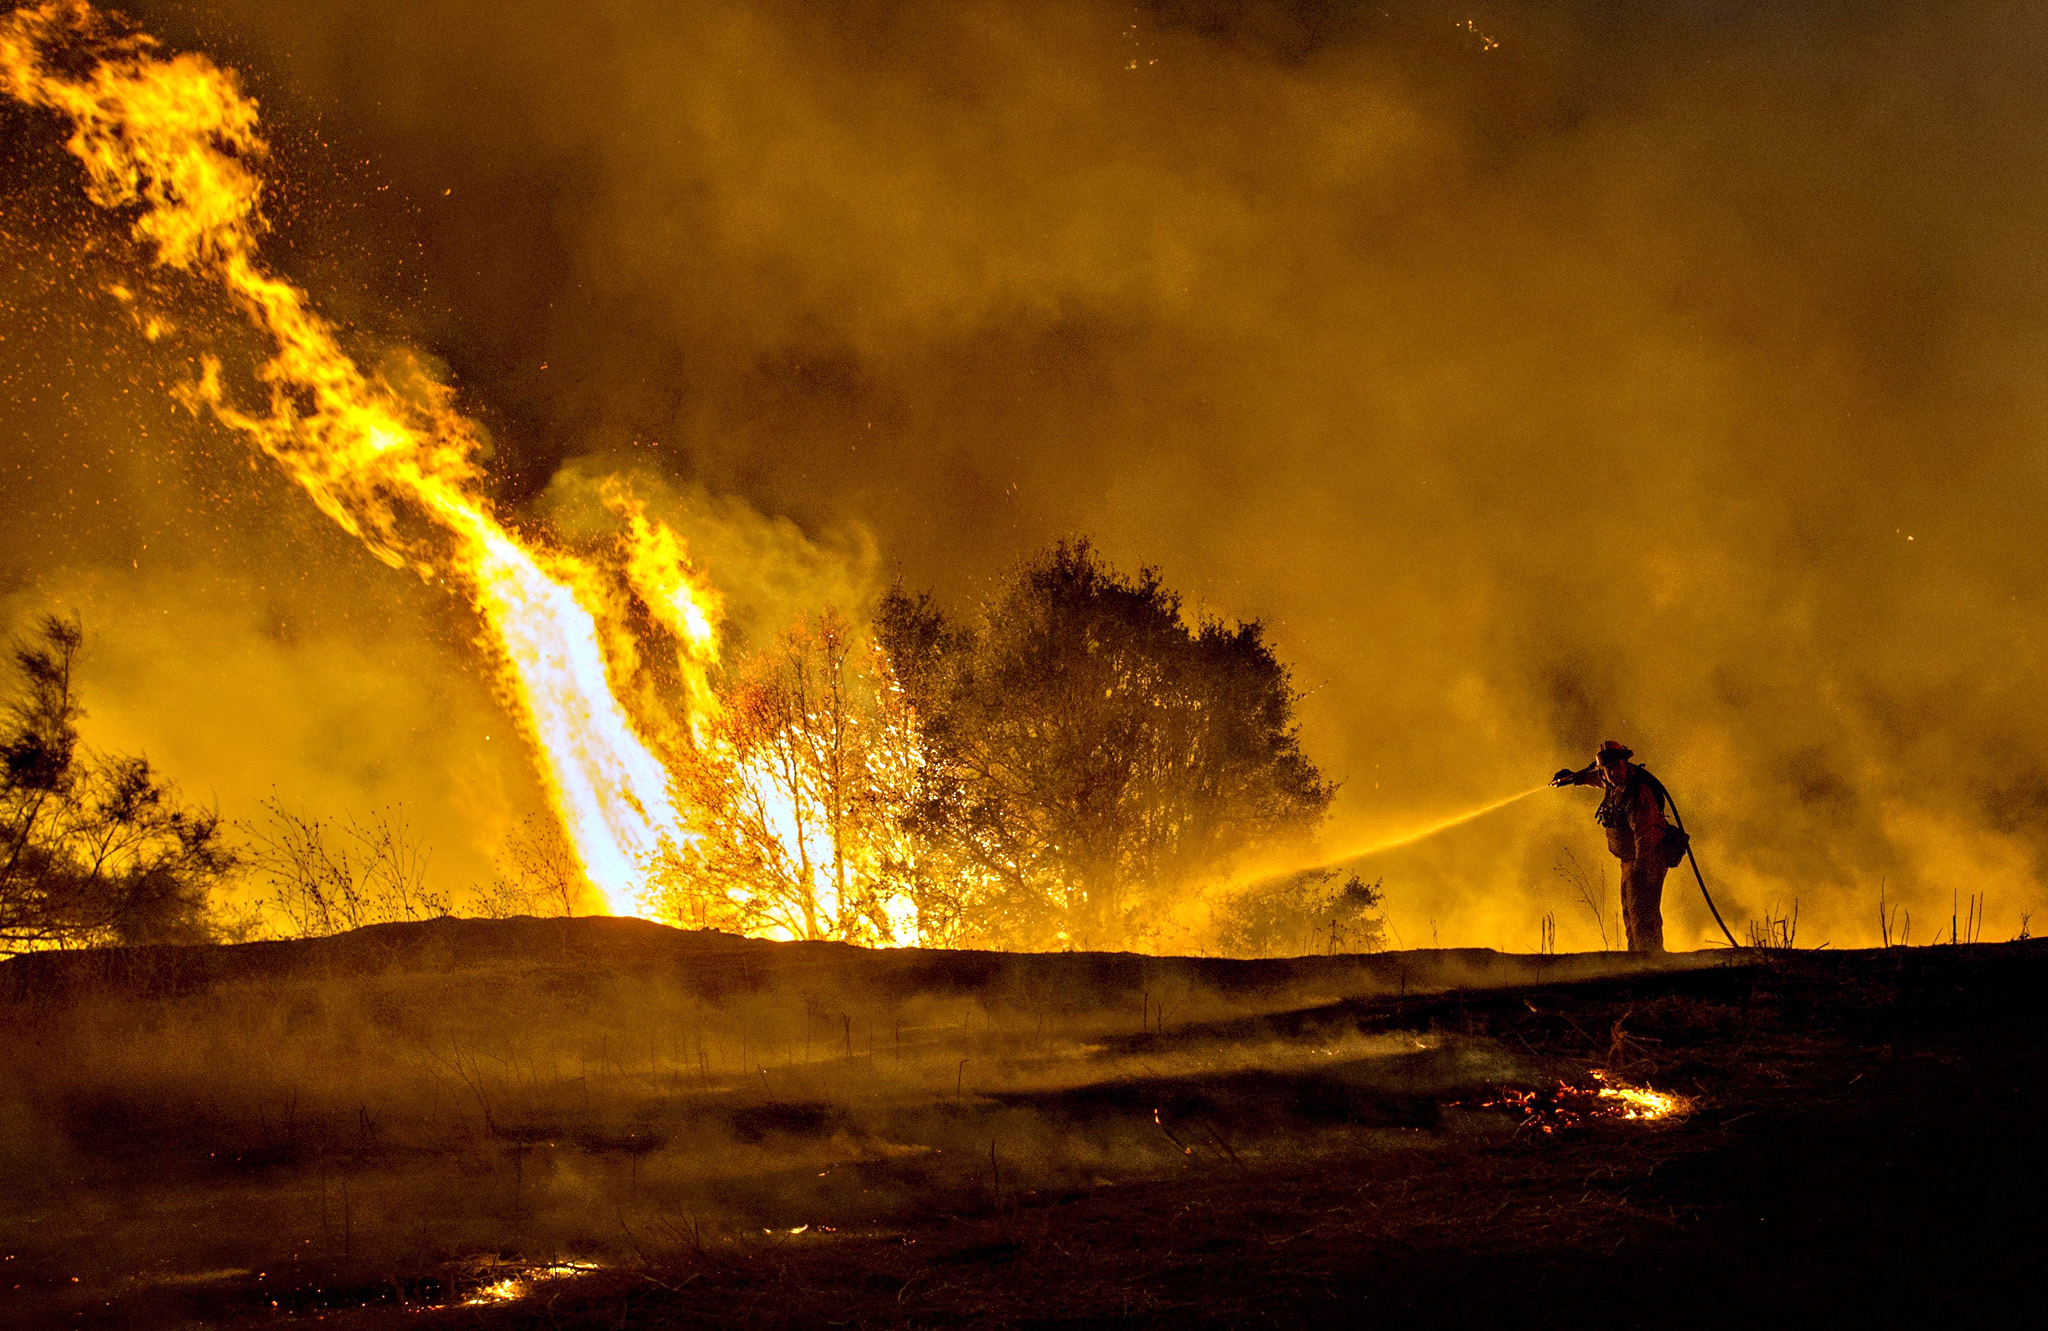 Firefighter Joe Darr douses flames of the Rocky fire along Highway 20 near Clearlake, California. Thousands of firefighters battled raging wildfires on August 2 in drought-parched California, where officials evacuated entire neighborhoods and closed miles of highway in the path of the inferno, which has claimed at least one life.